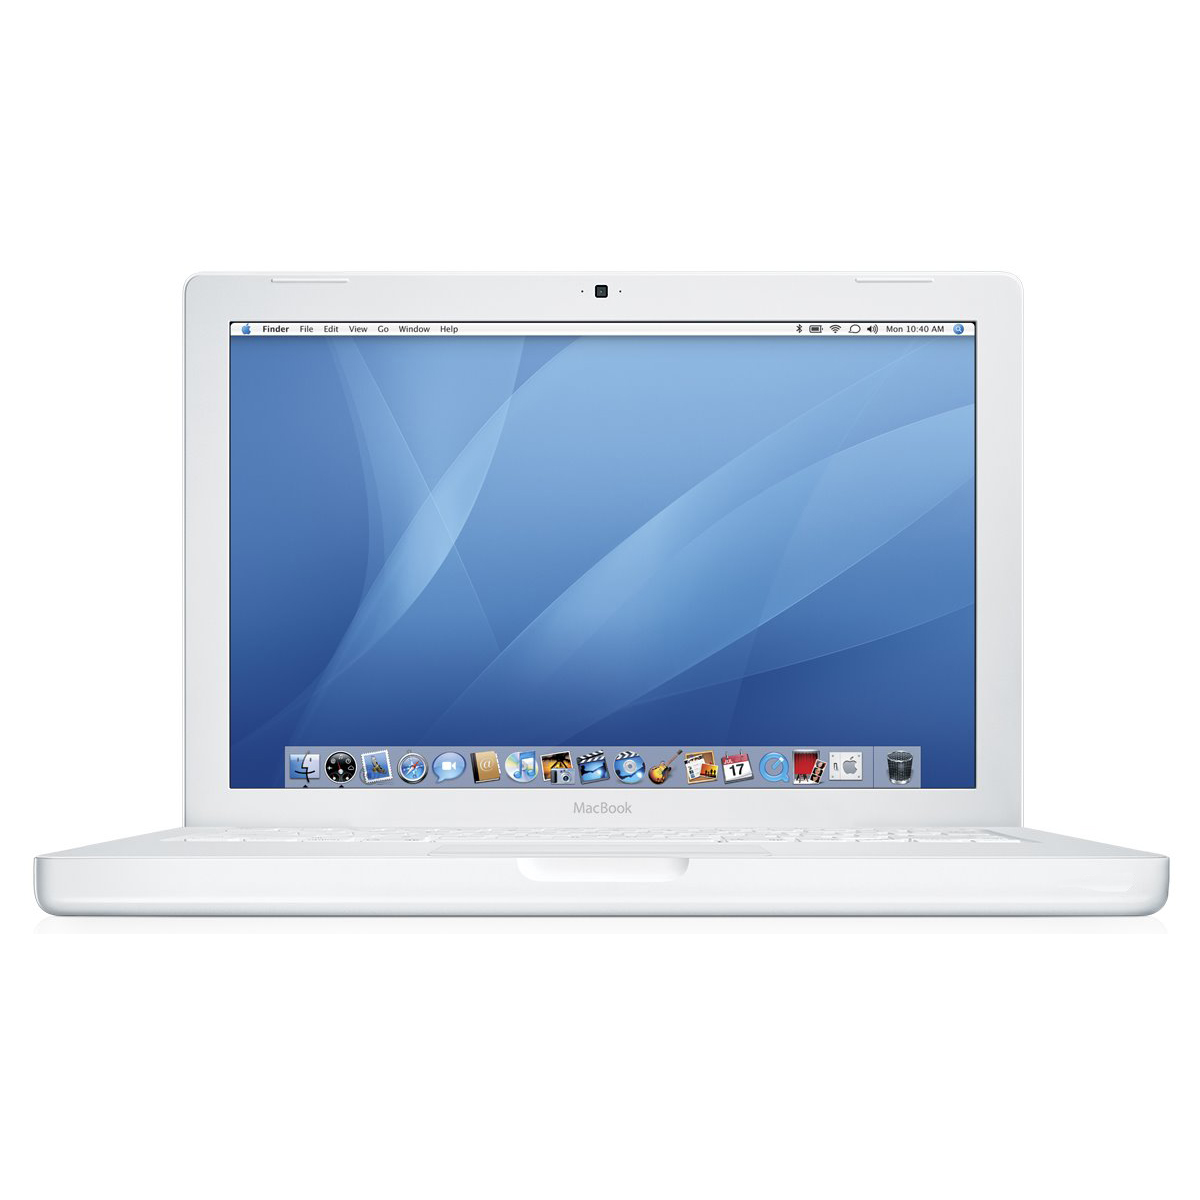 "Apple MB402LL/A 13.3"" Macbook - White"